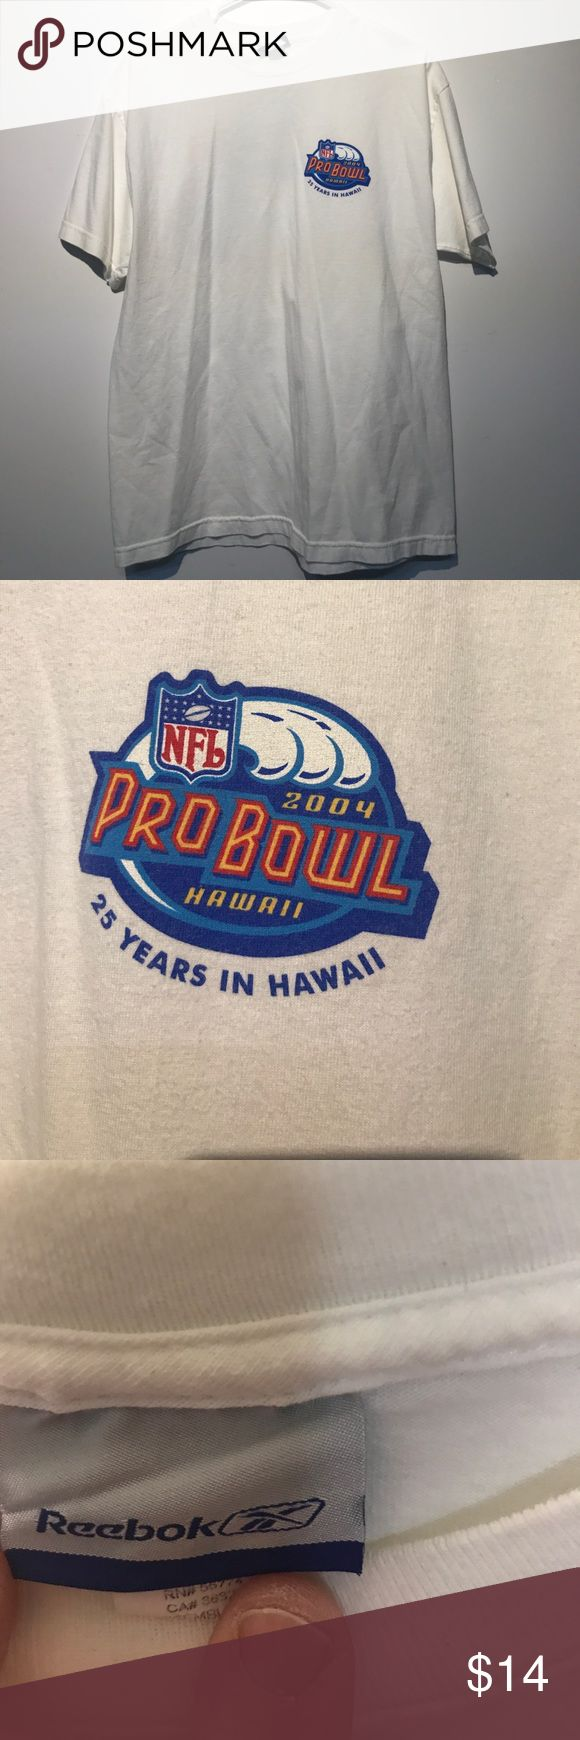 Preown 2004 25th anniversary NFL Pro Bowl t-shirt Preowned 2004 25th anniversary NFL Pro Bowl t-shirt.  Size large in excellent condition. Made in Mexico of USA fabric. 100% cotton preshrunk. Smoke-free home. Submit all offers. A1 Reebok Shirts Tees - Short Sleeve